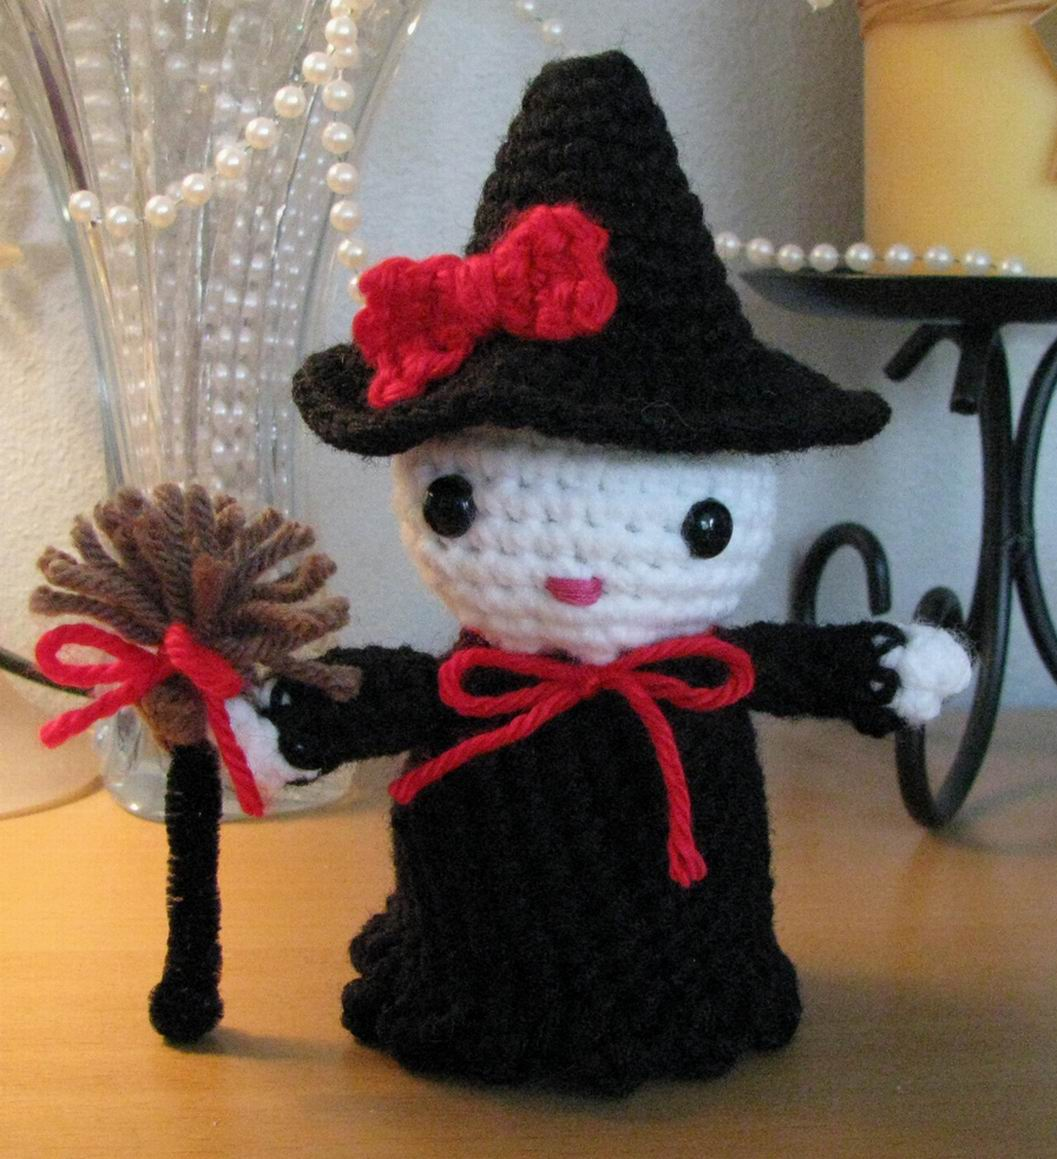 Free Crochet Patterns For Halloween : 2000 Free Amigurumi Patterns: Kitty Witch Pattern